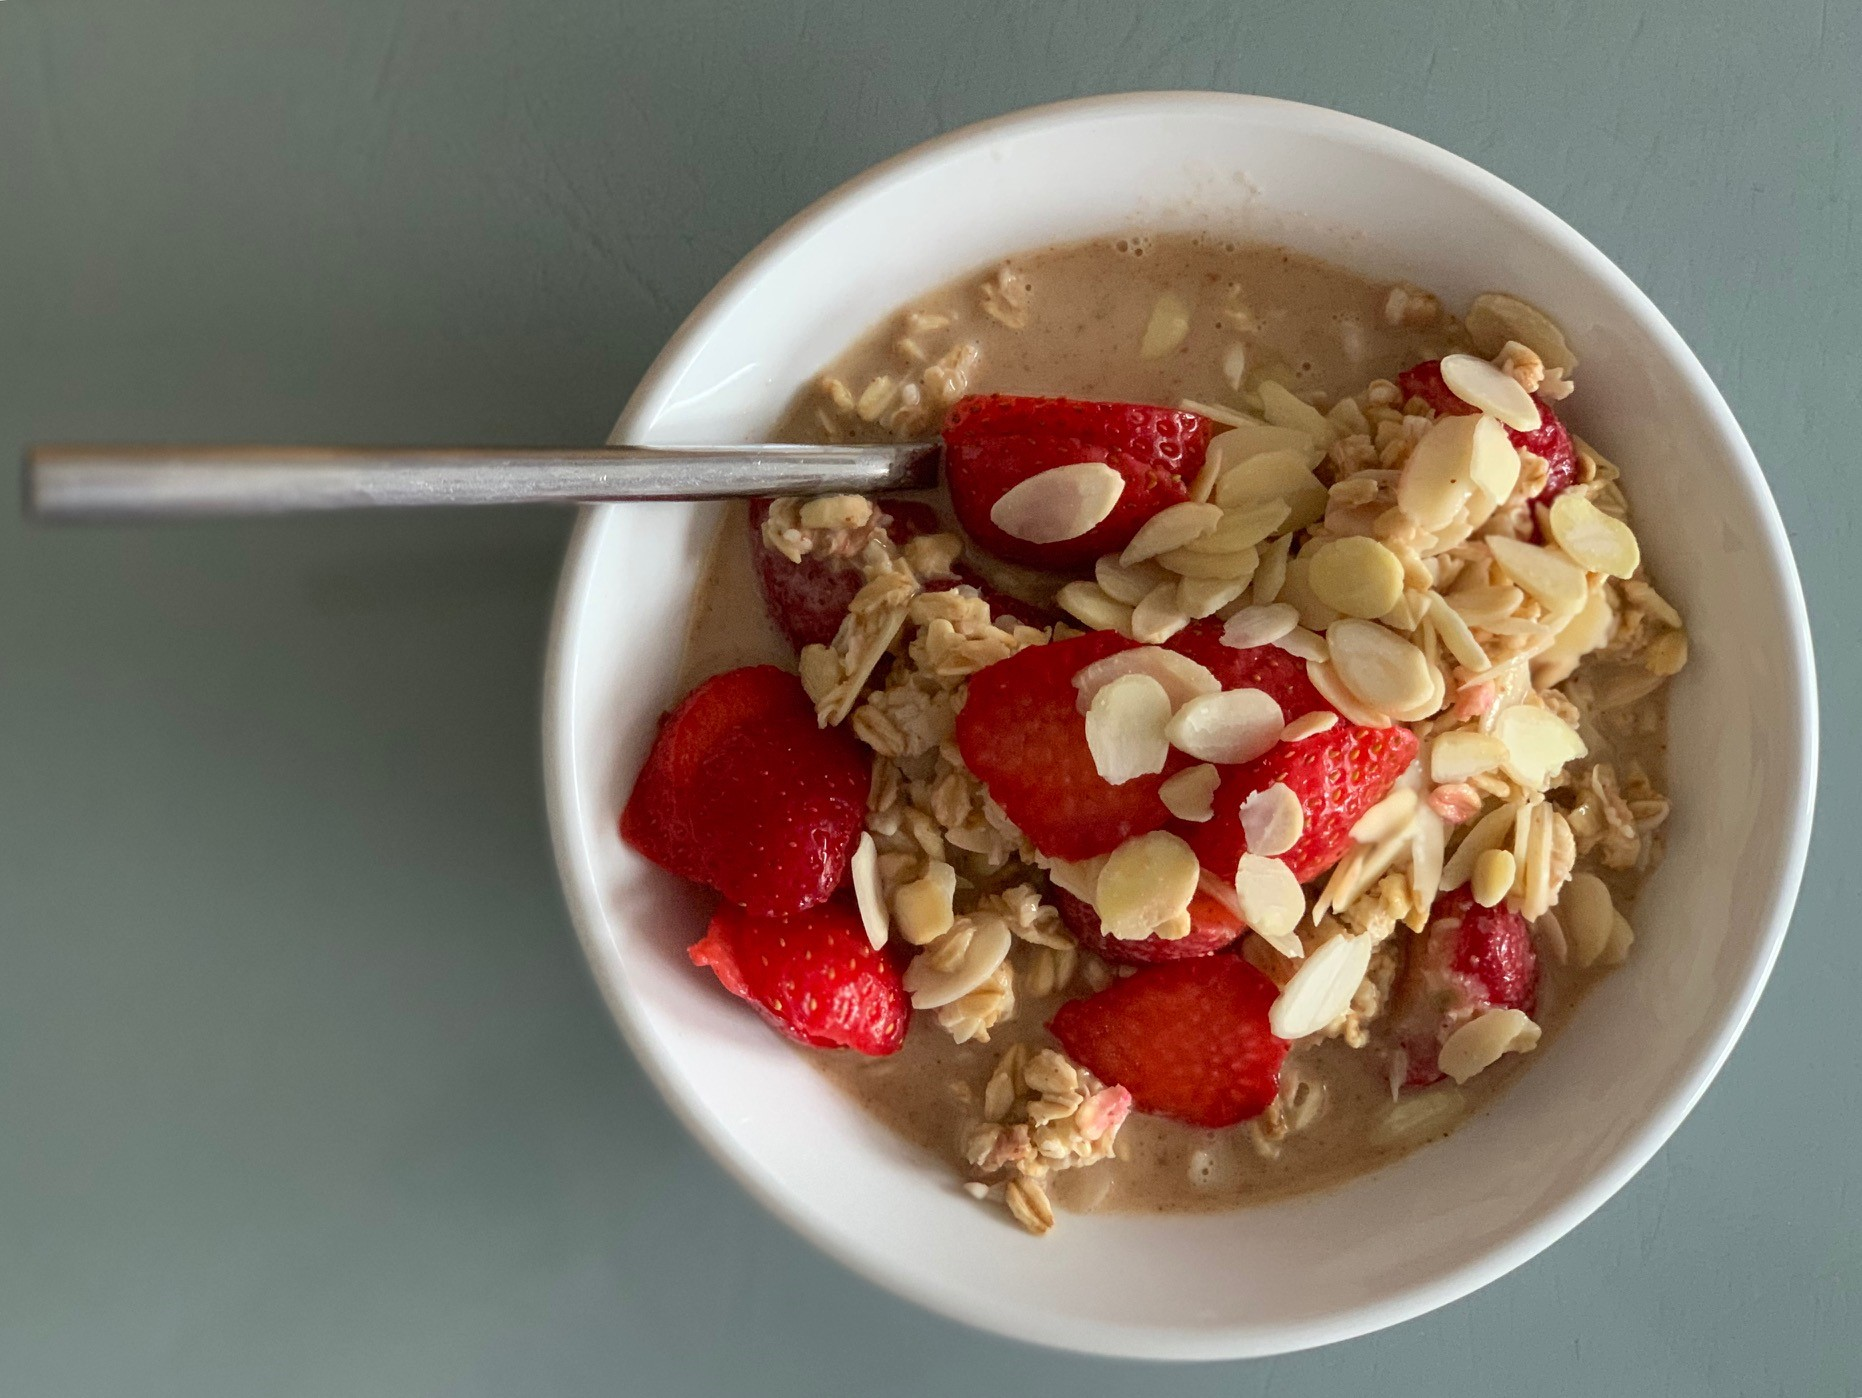 strawberry and almond milk oats suitable for vegans